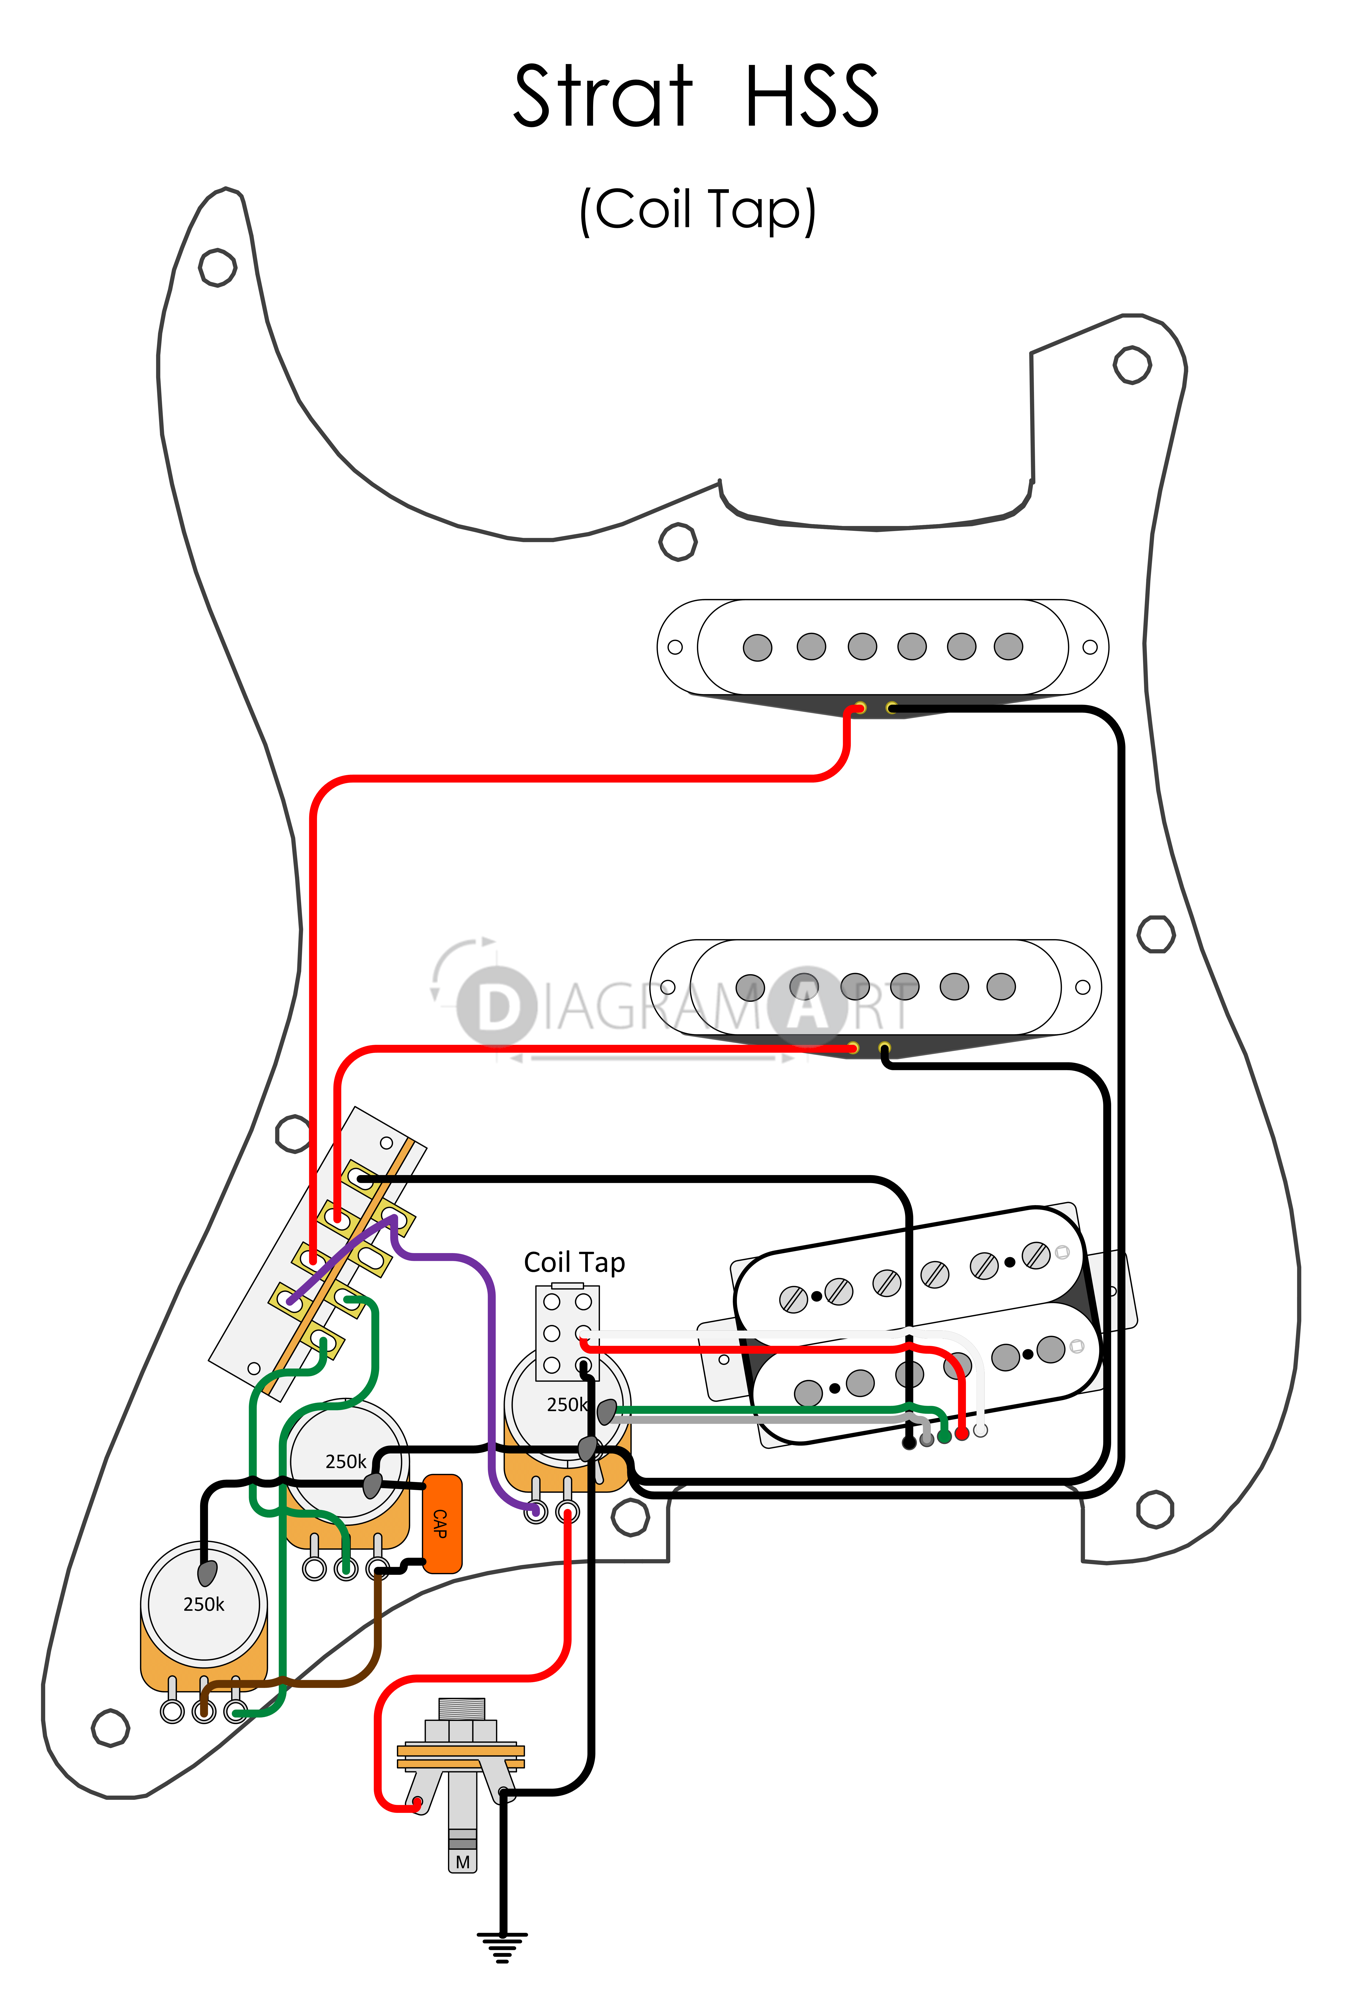 Incredible Stratocaster Hss Wiring Diagram Wiring Diagram Wiring Cloud Hisonuggs Outletorg